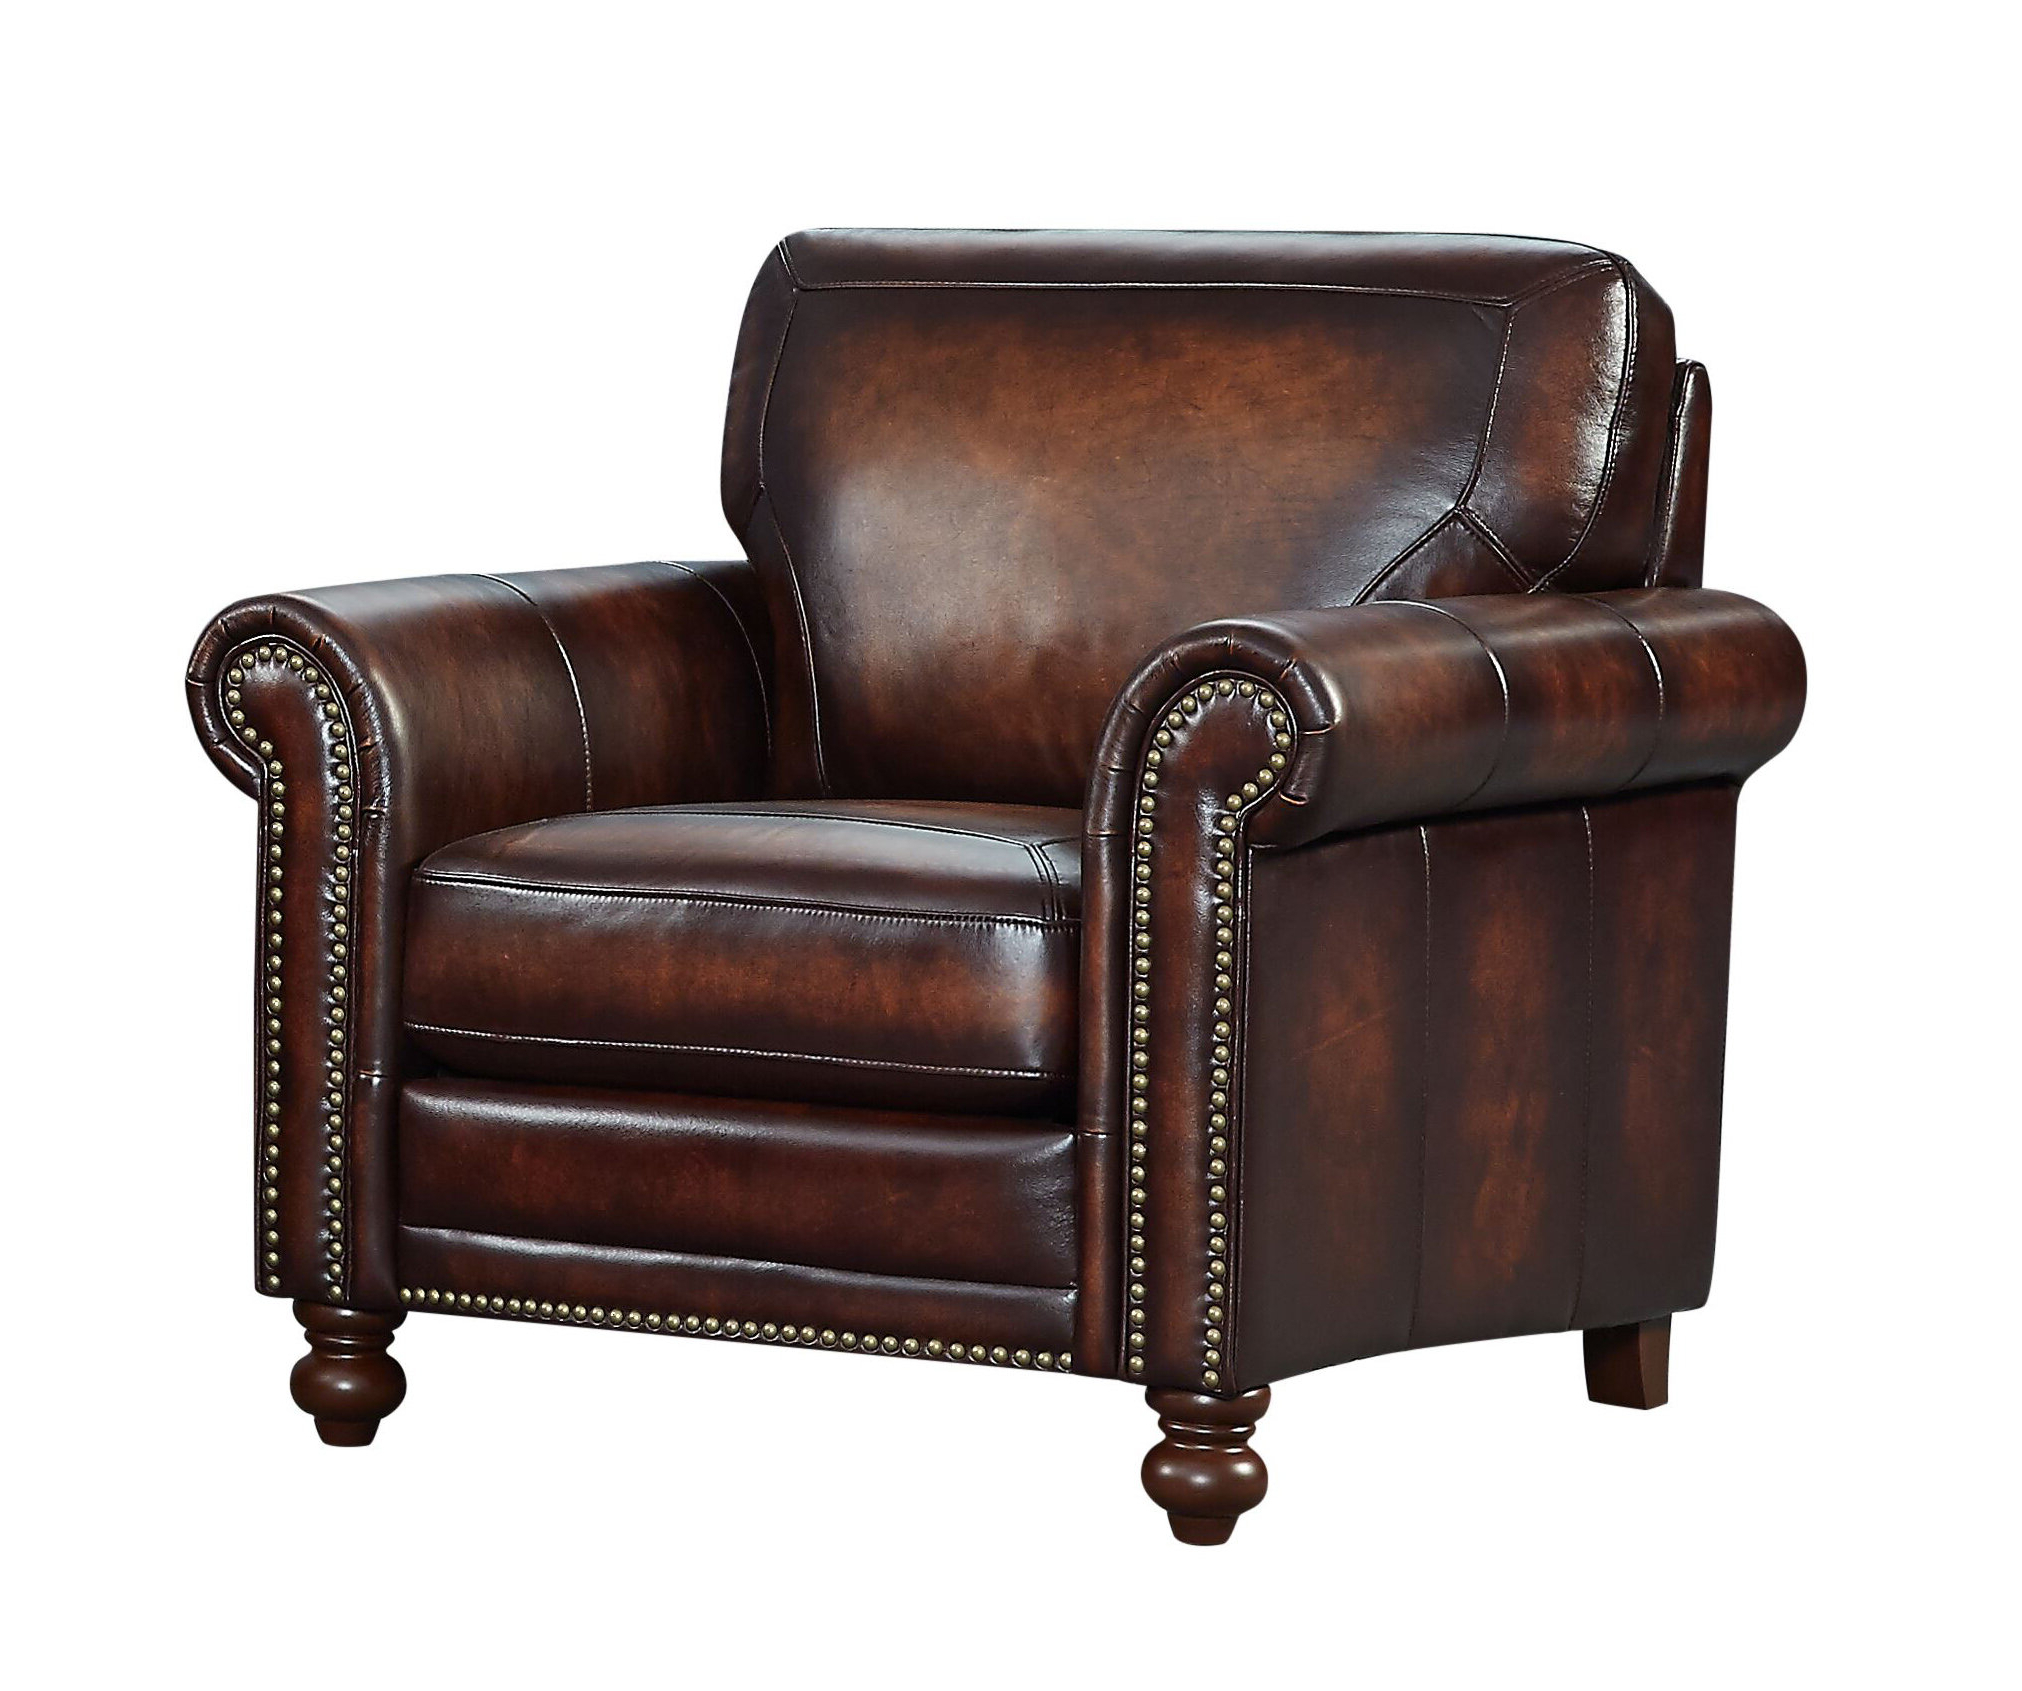 Bach Top Grain Italian Leather Club Chair Pertaining To Well Known Sheldon Tufted Top Grain Leather Club Chairs (View 6 of 20)